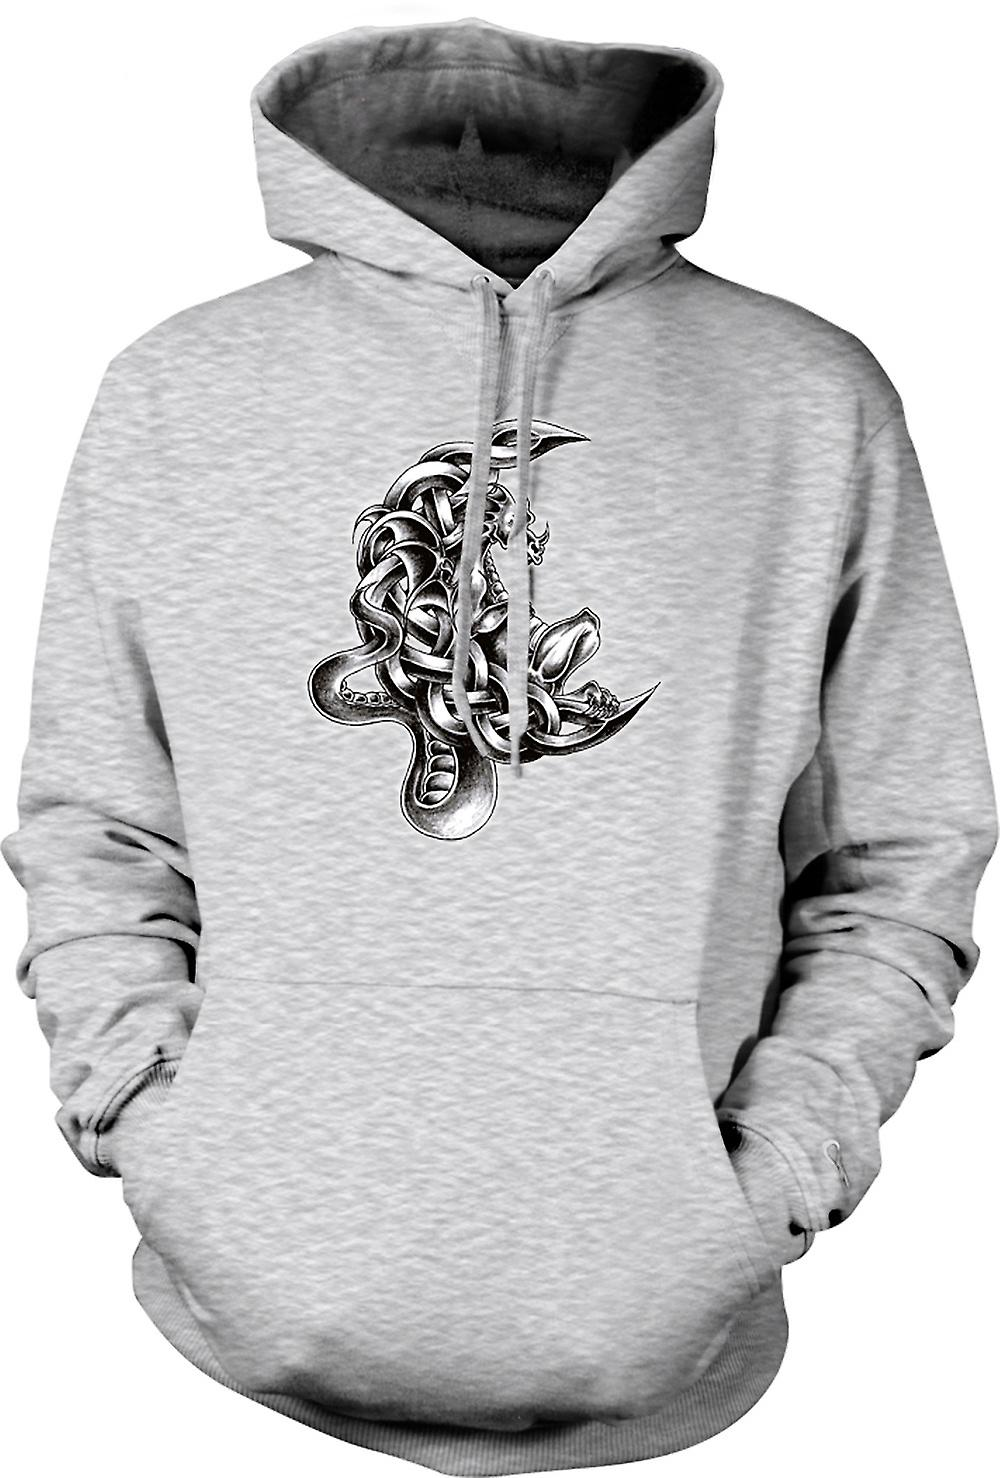 Mens Hoodie - Dragon Tattoo - Design Sketch